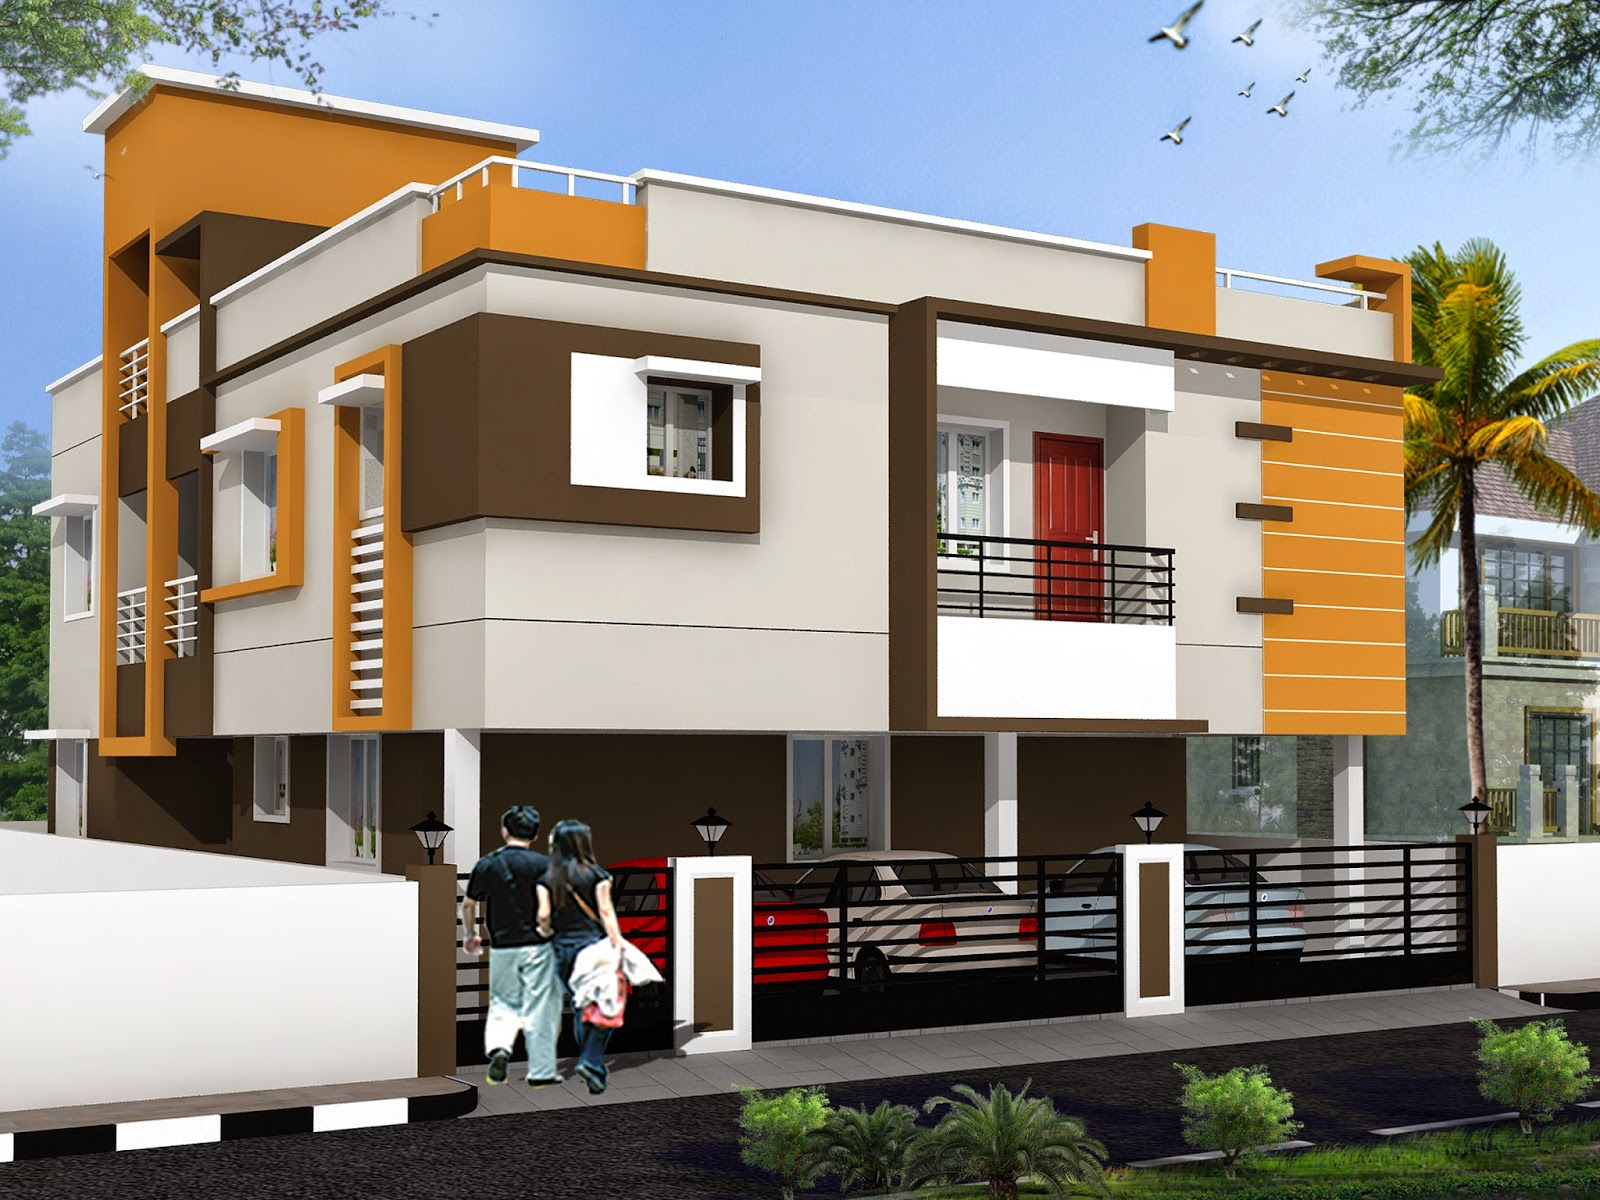 Luckydesigners 3d elevation residential building for Elevation design photos residential houses